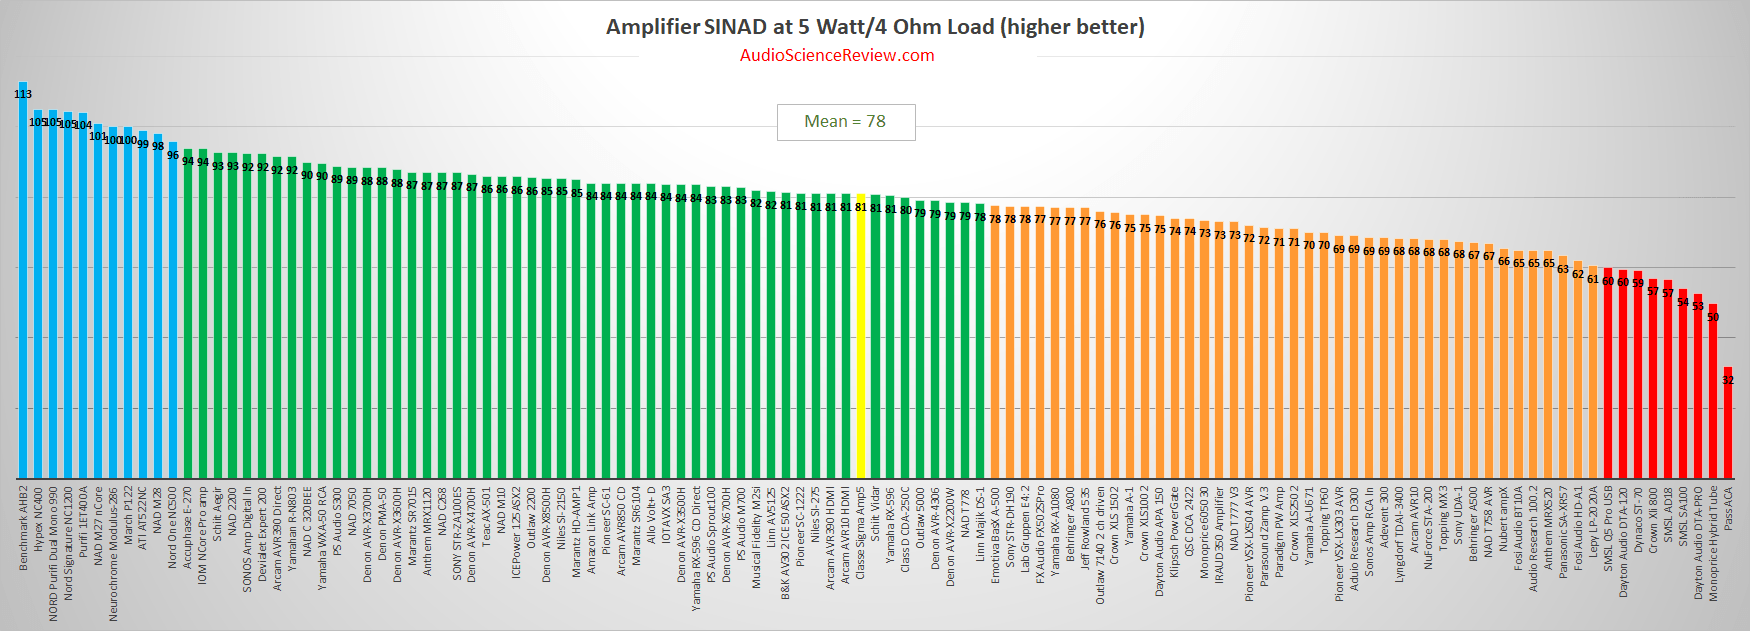 best multichannel high-end amplifier review.png